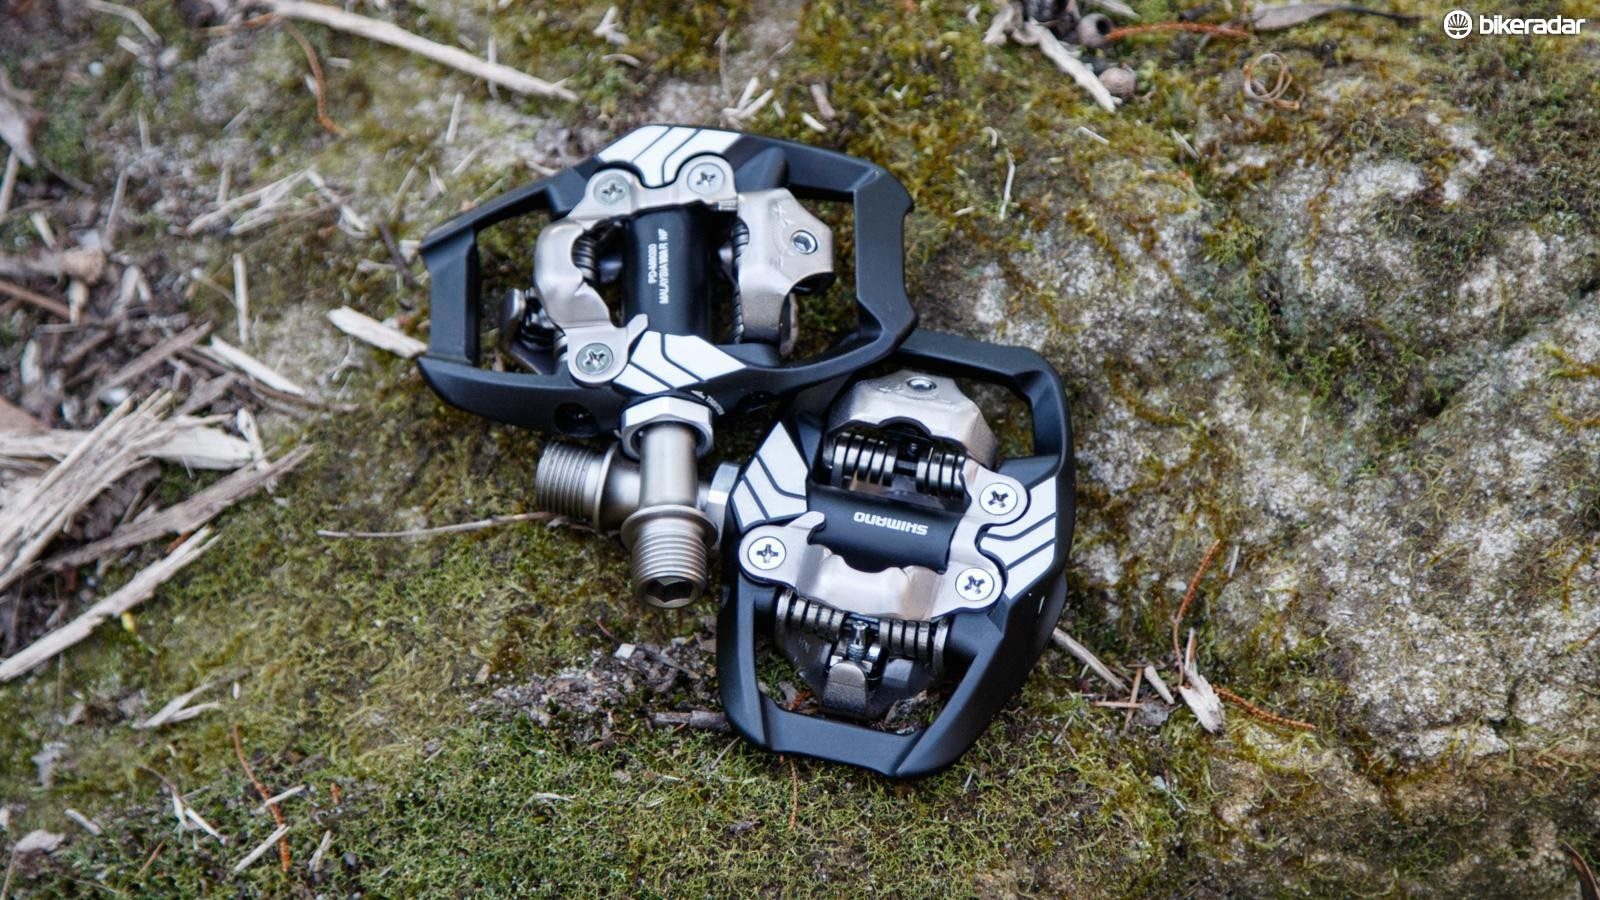 Shimano's XT trail pedals are a great option if you're looking for a bit more support